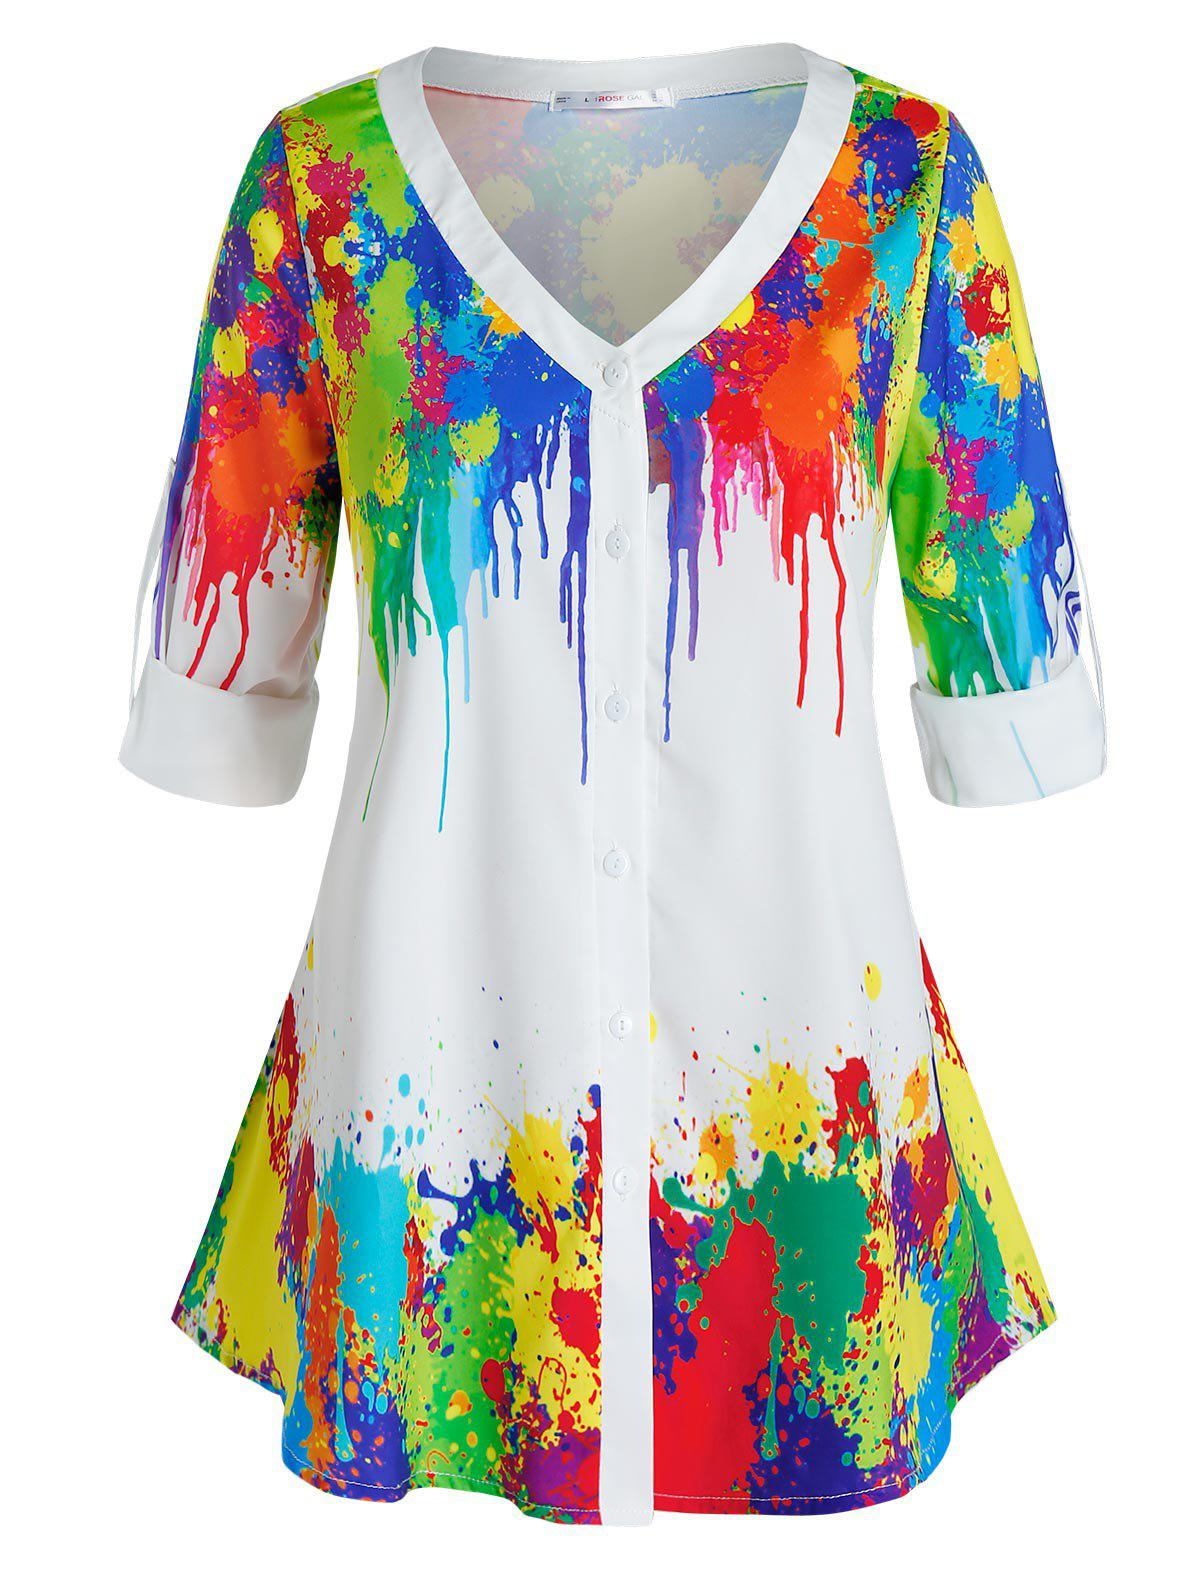 Plus Size Colorful Splatter Paint Roll Up Sleeve Top - multicolor 5X